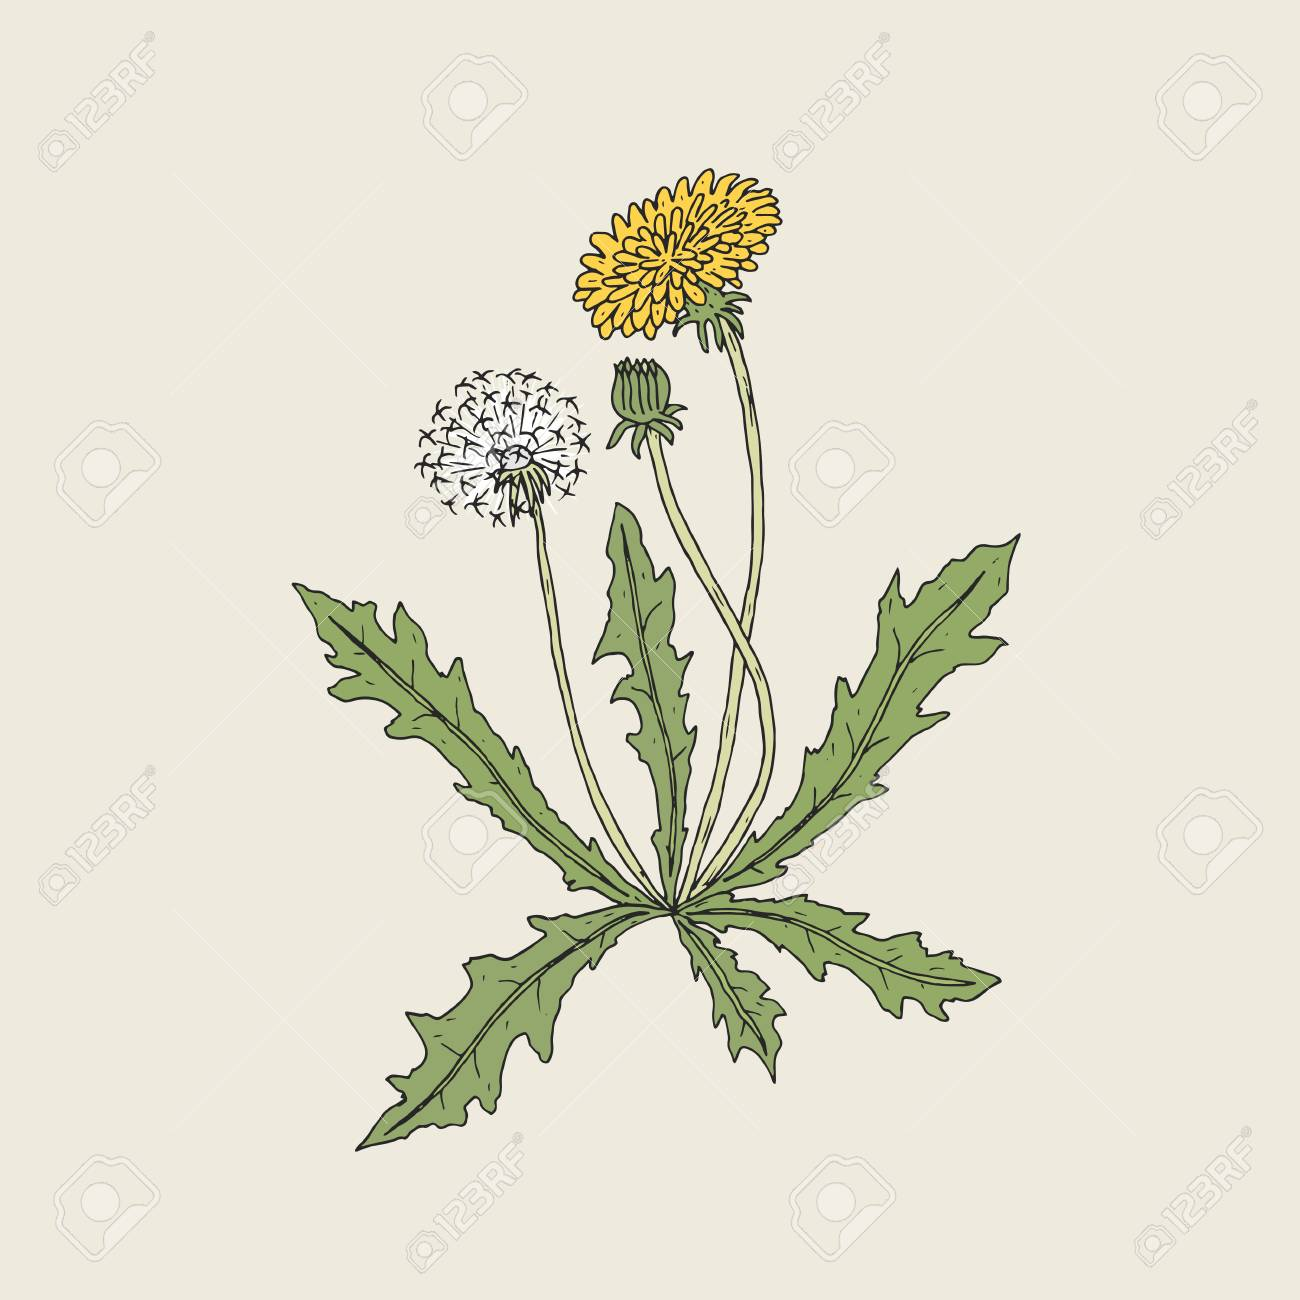 elegant detailed drawing of dandelion plant with yellow flower